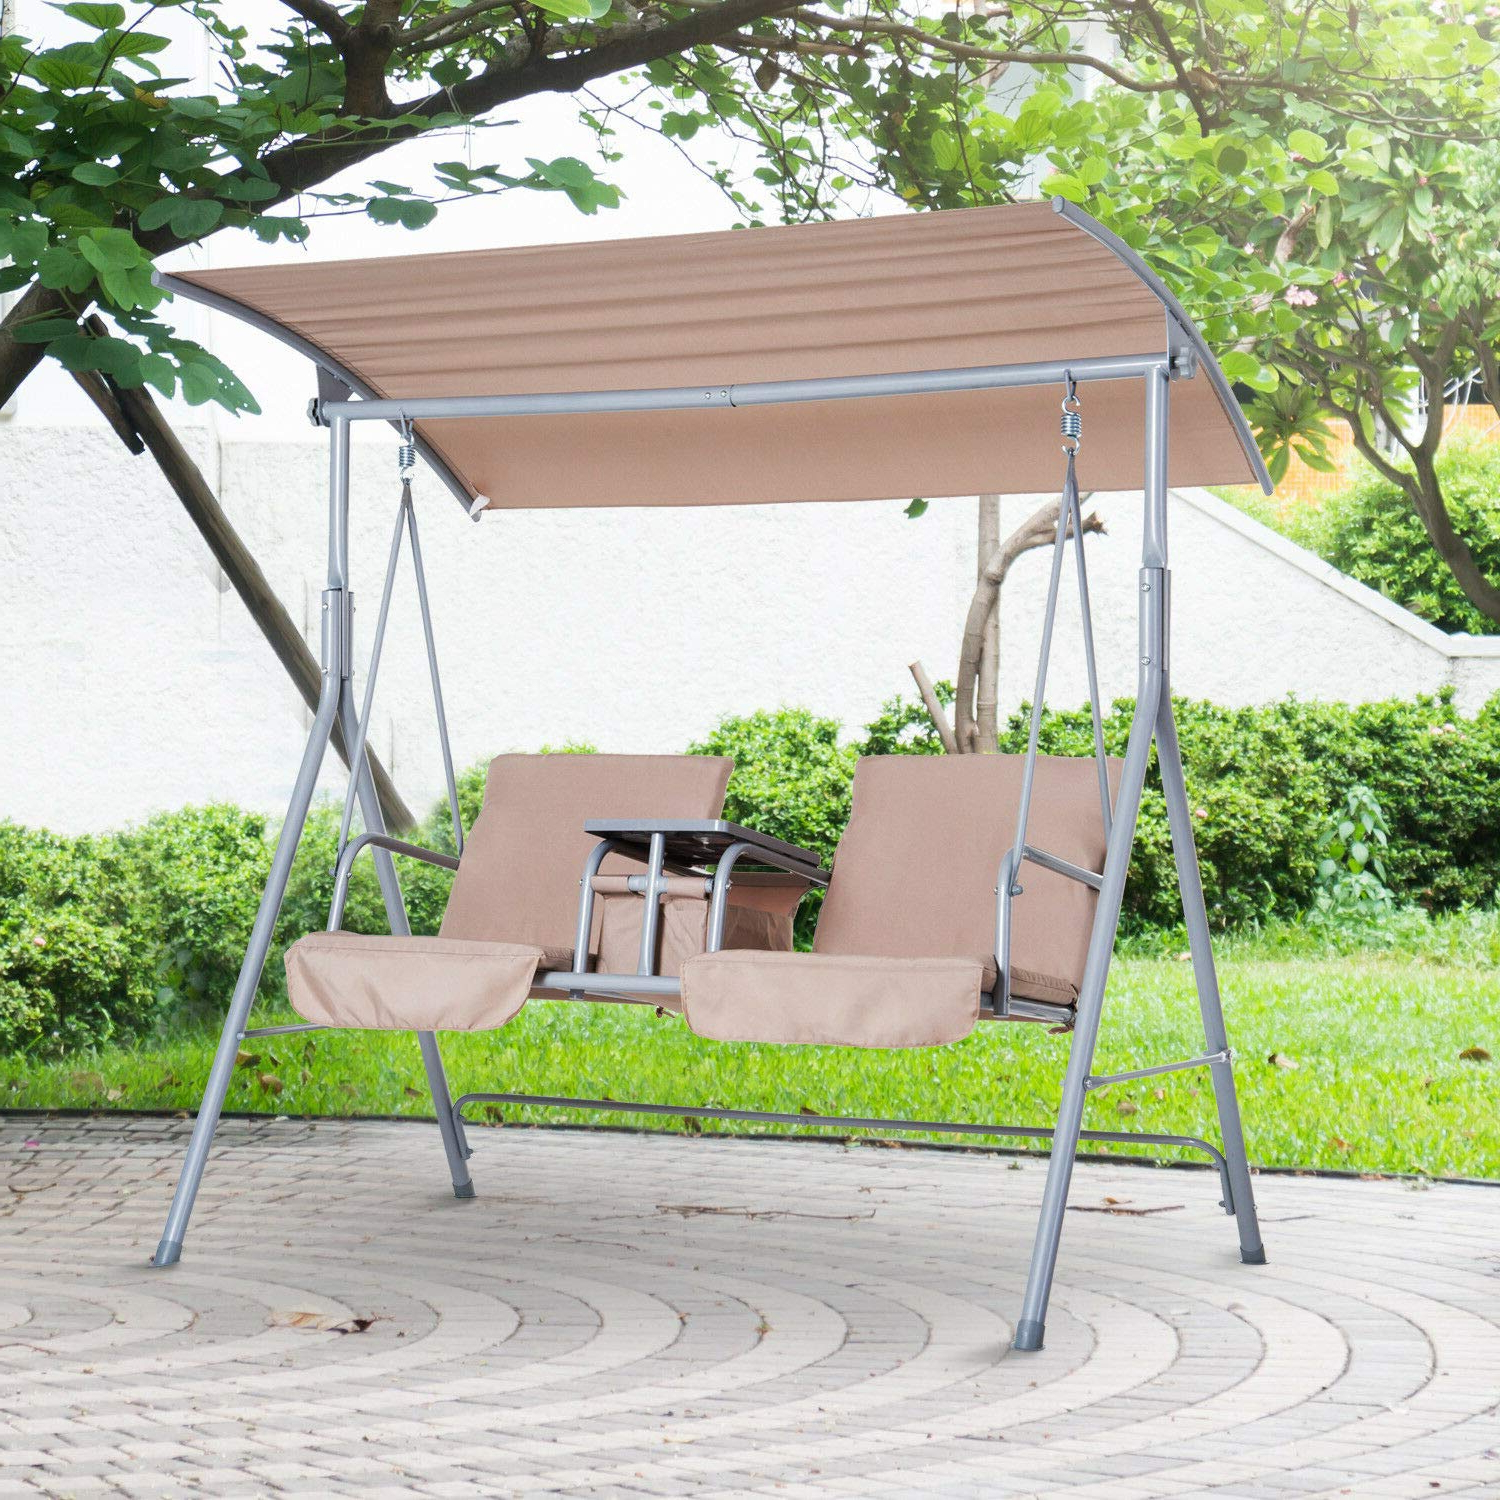 Trendy Patio Porch Swings With Stand In Amazon : Mb Campstar 2 Person Outdoor Patio Porch Swing (View 7 of 30)